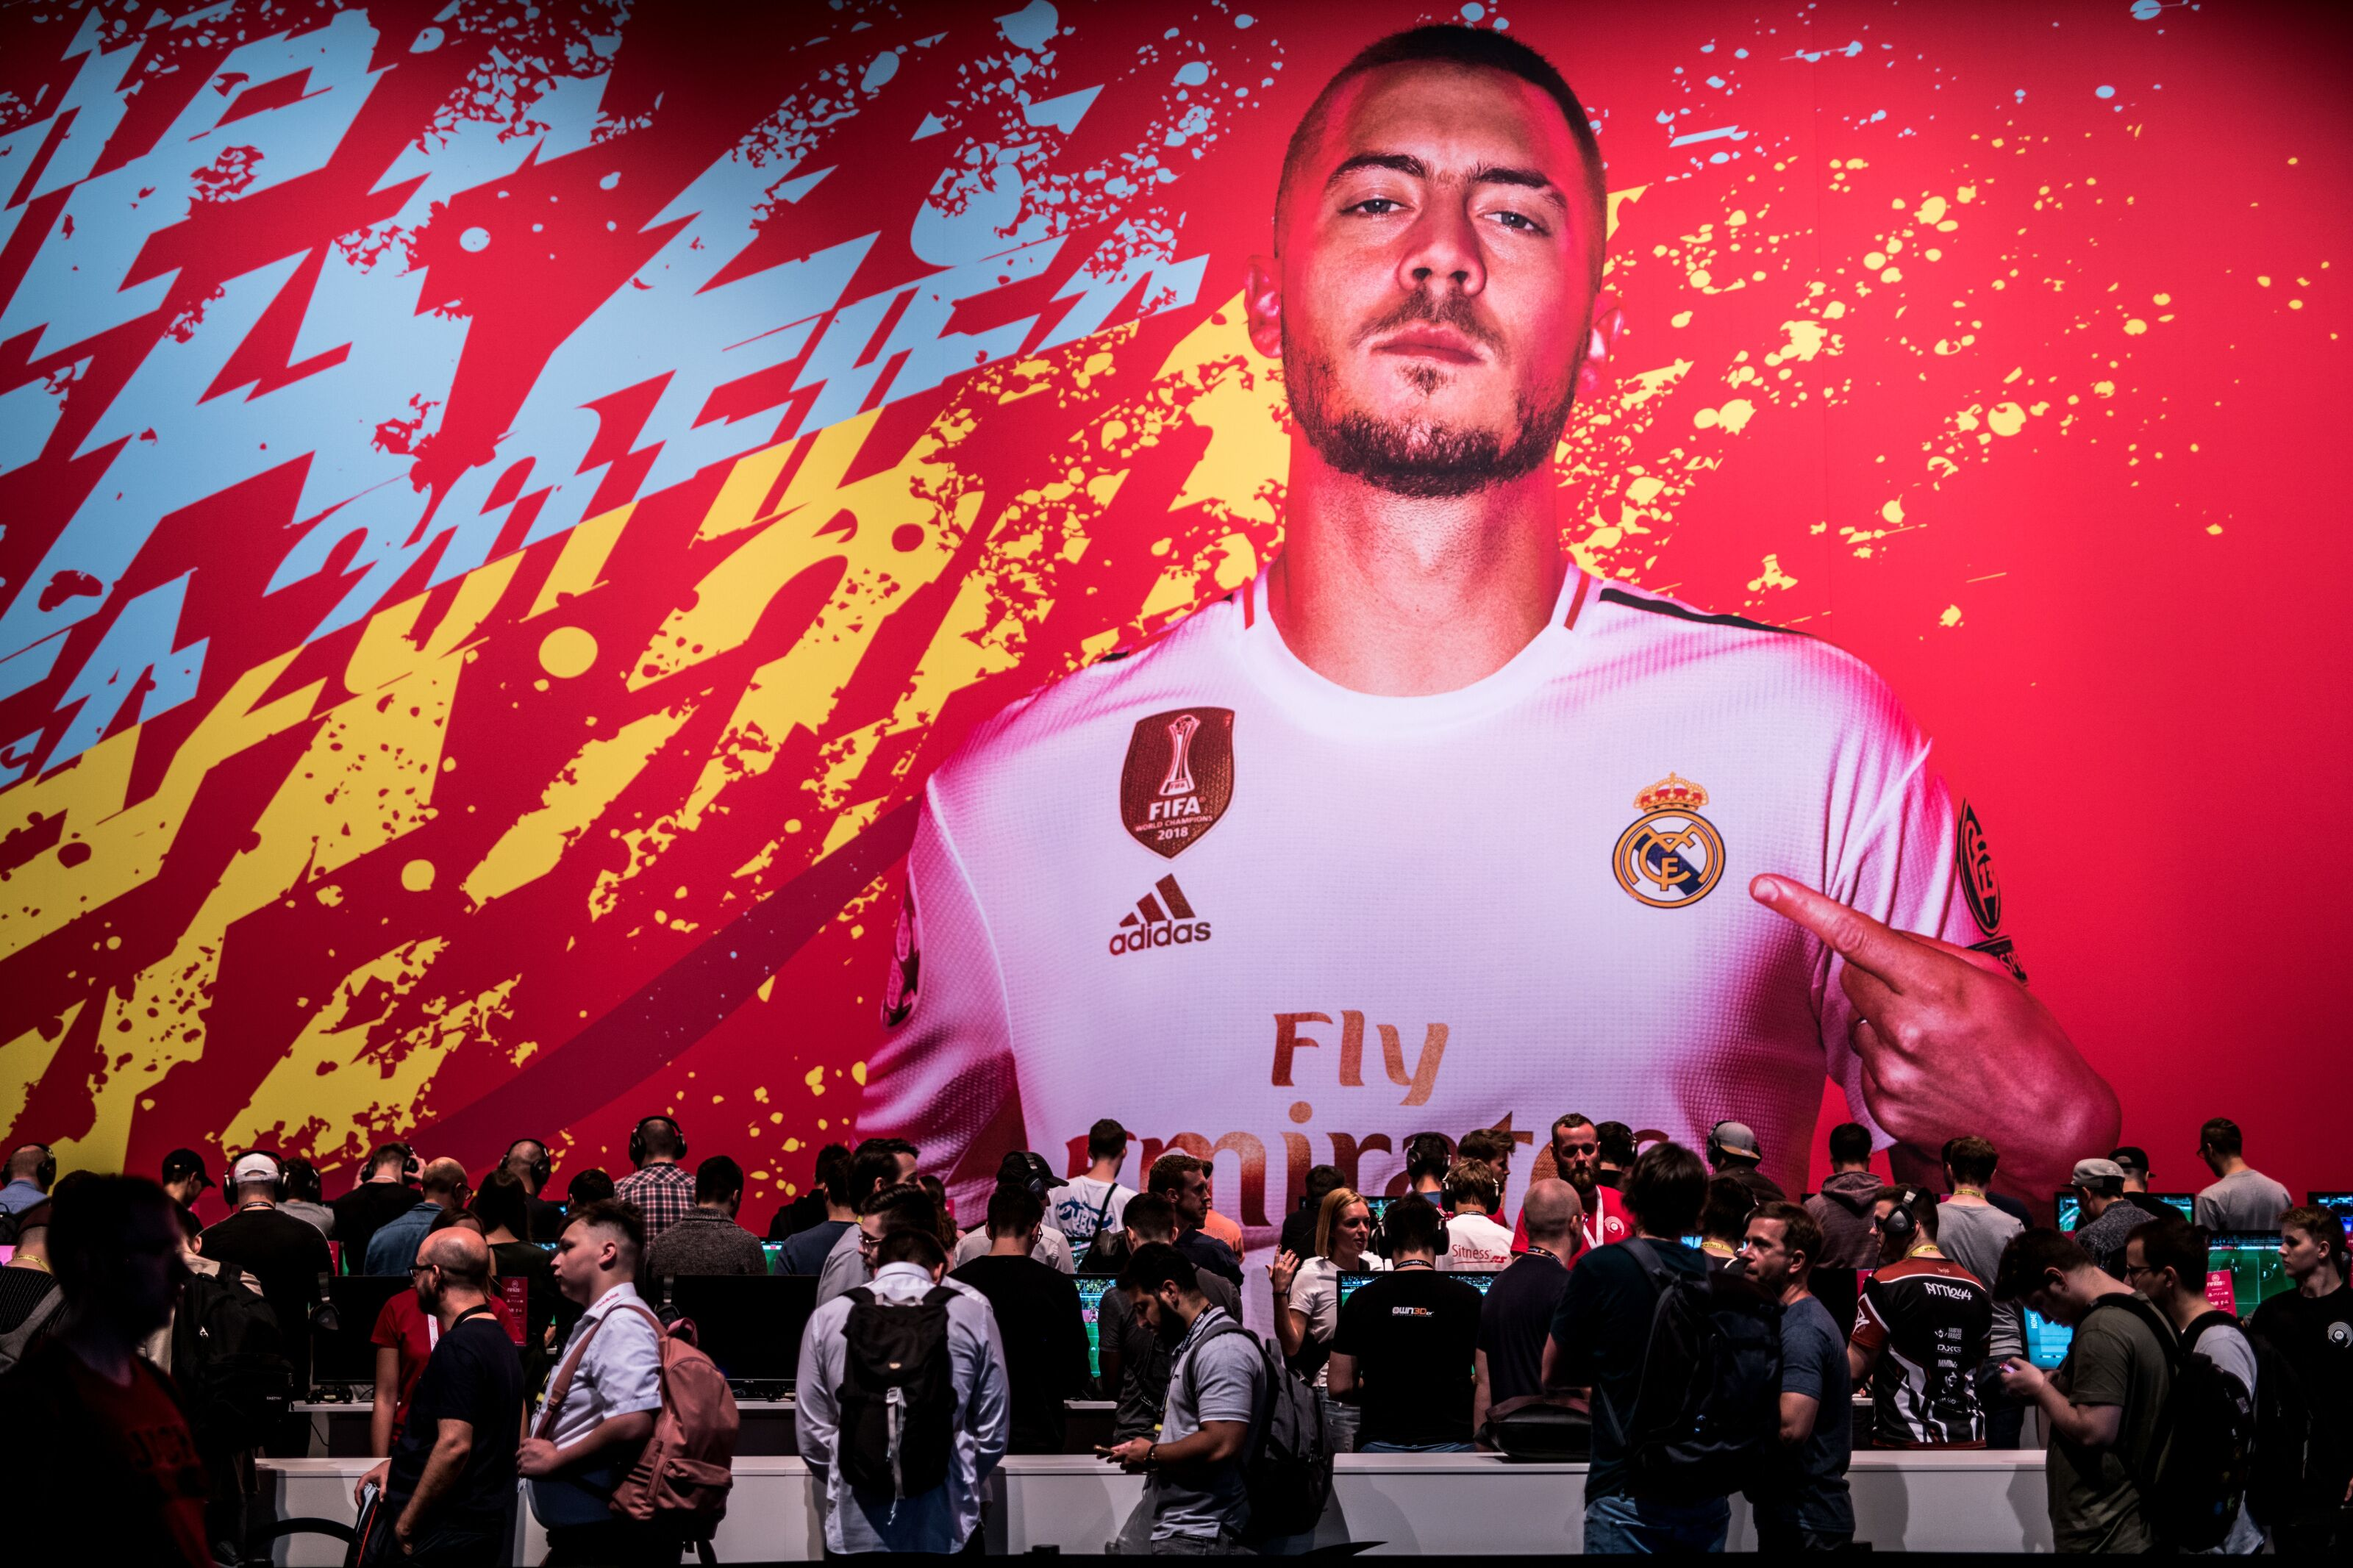 Real Madrid: Three player ratings FIFA 20 got wrong